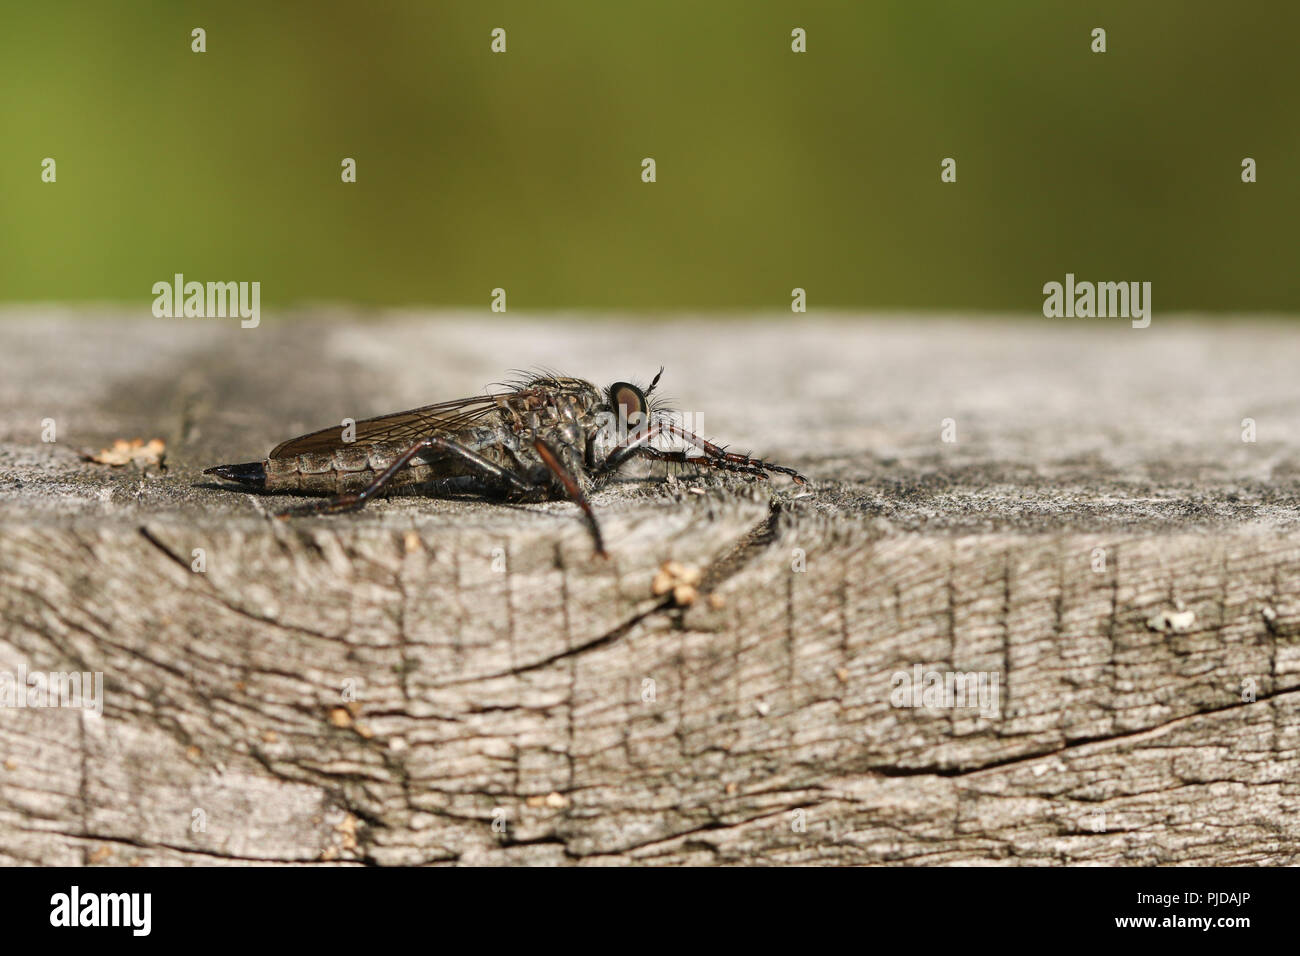 A Common Awl Robberfly (Neoitamus cyanurus) perching on a wooden fence at the edge of woodland. It is hunting for insects to feed on. - Stock Image